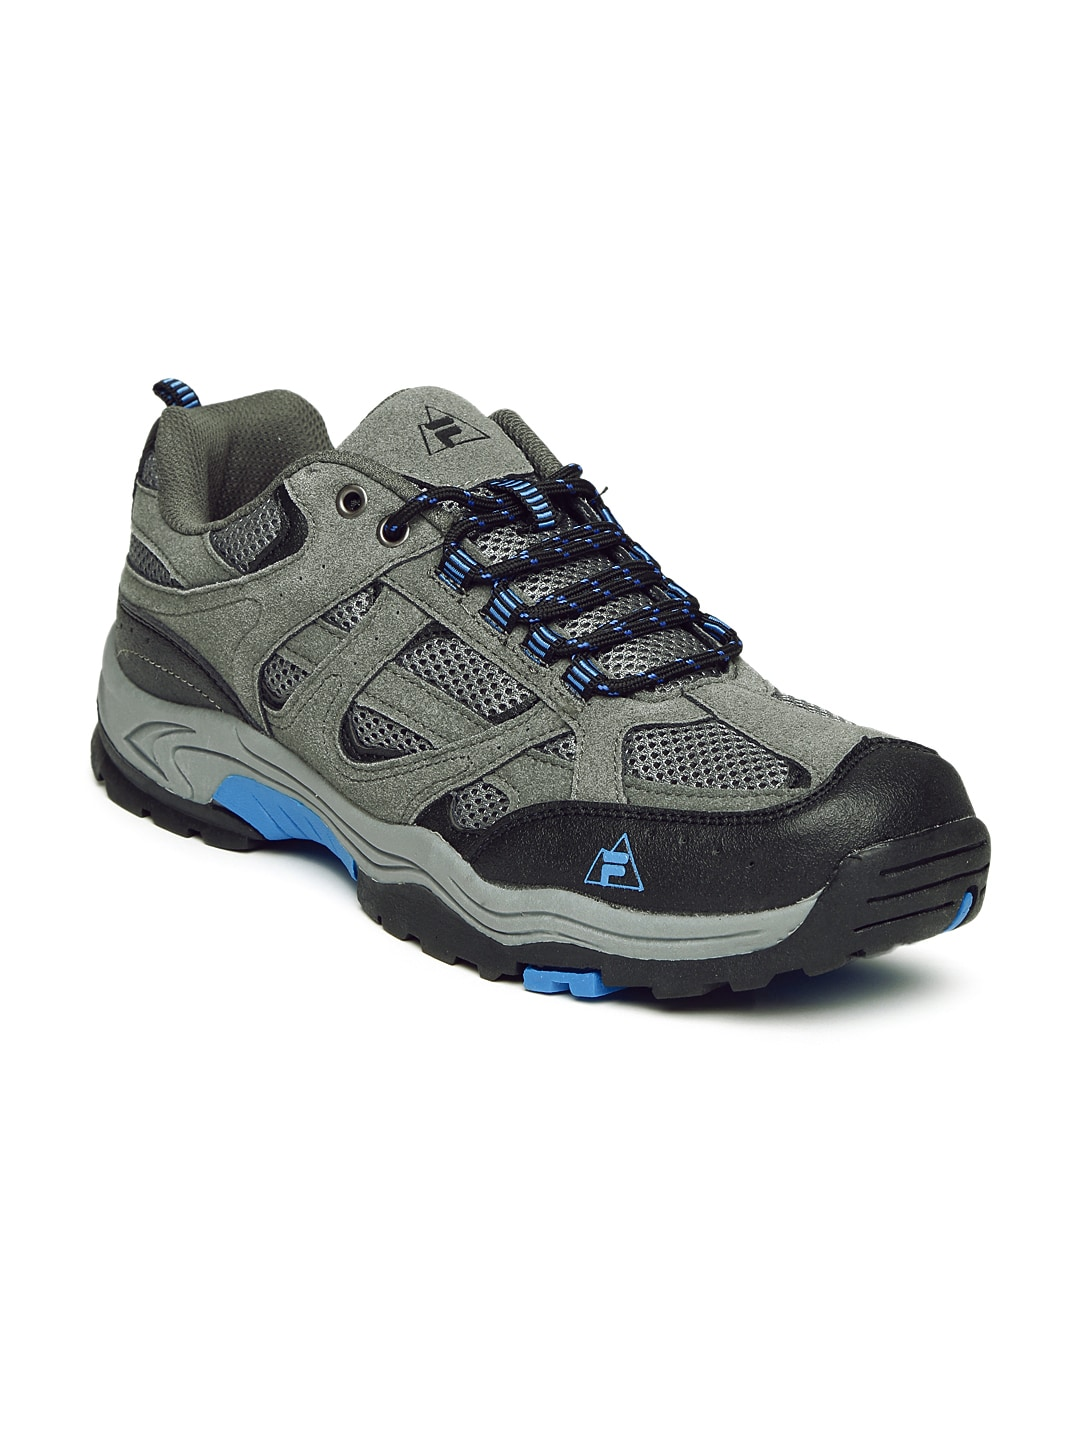 ddbdc3be309 Fila 11003290 Men Grey Hunter Running Shoes - Best Price in India ...